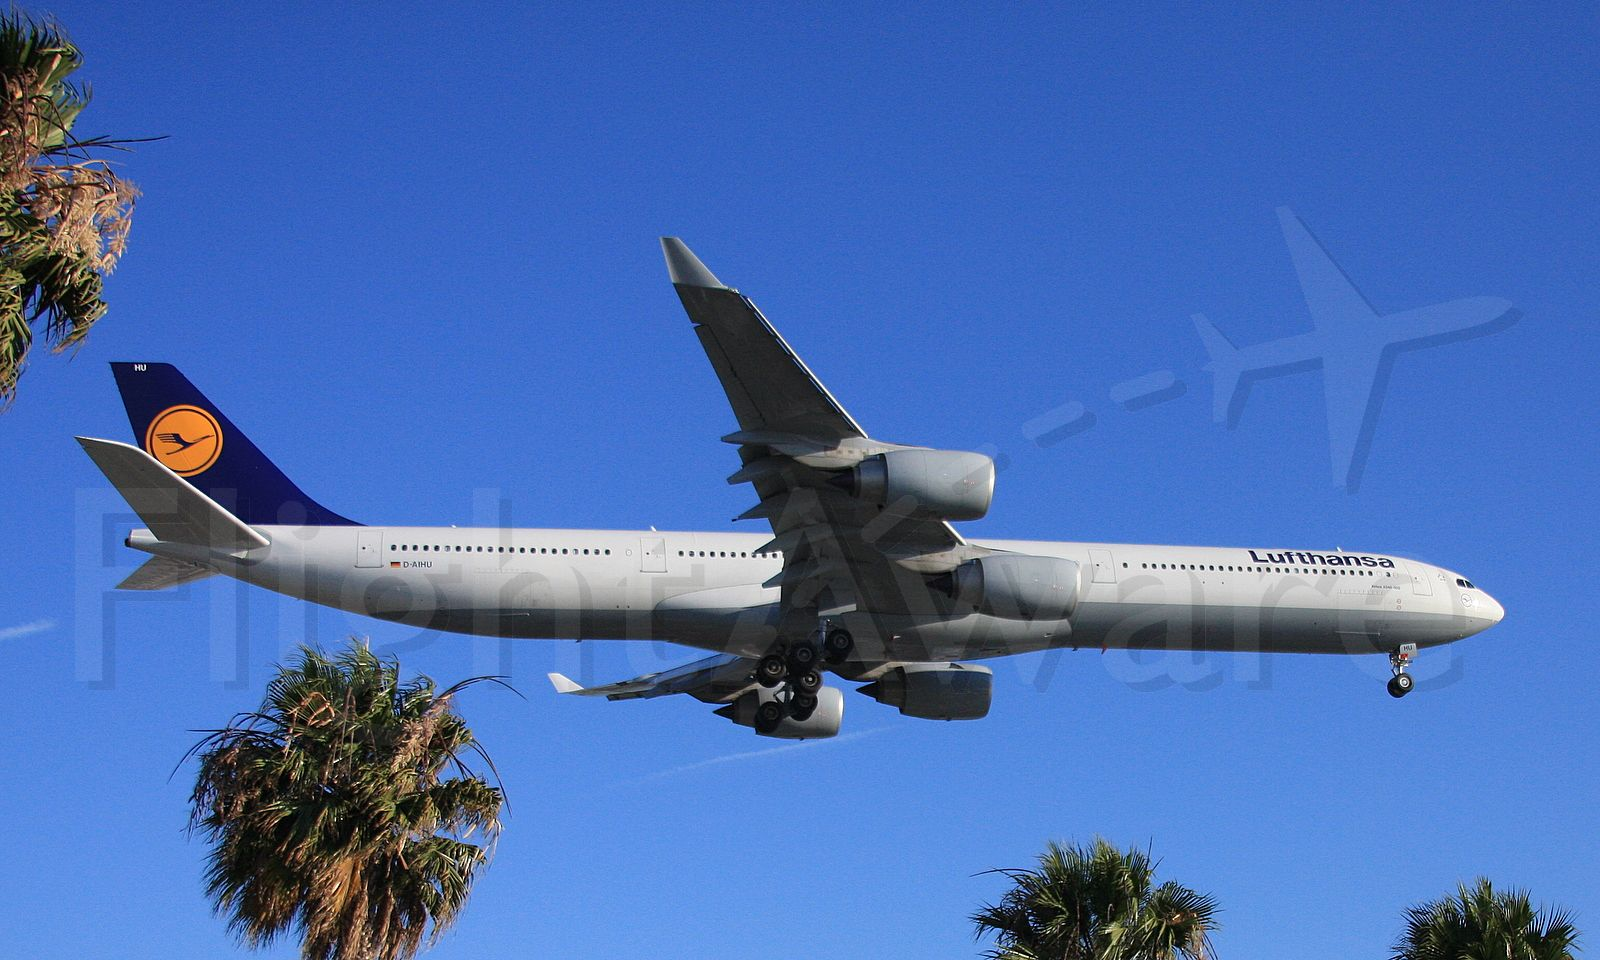 Airbus A340-600 (D-AIHU) - On short final to 24R, from the park across from In N Out